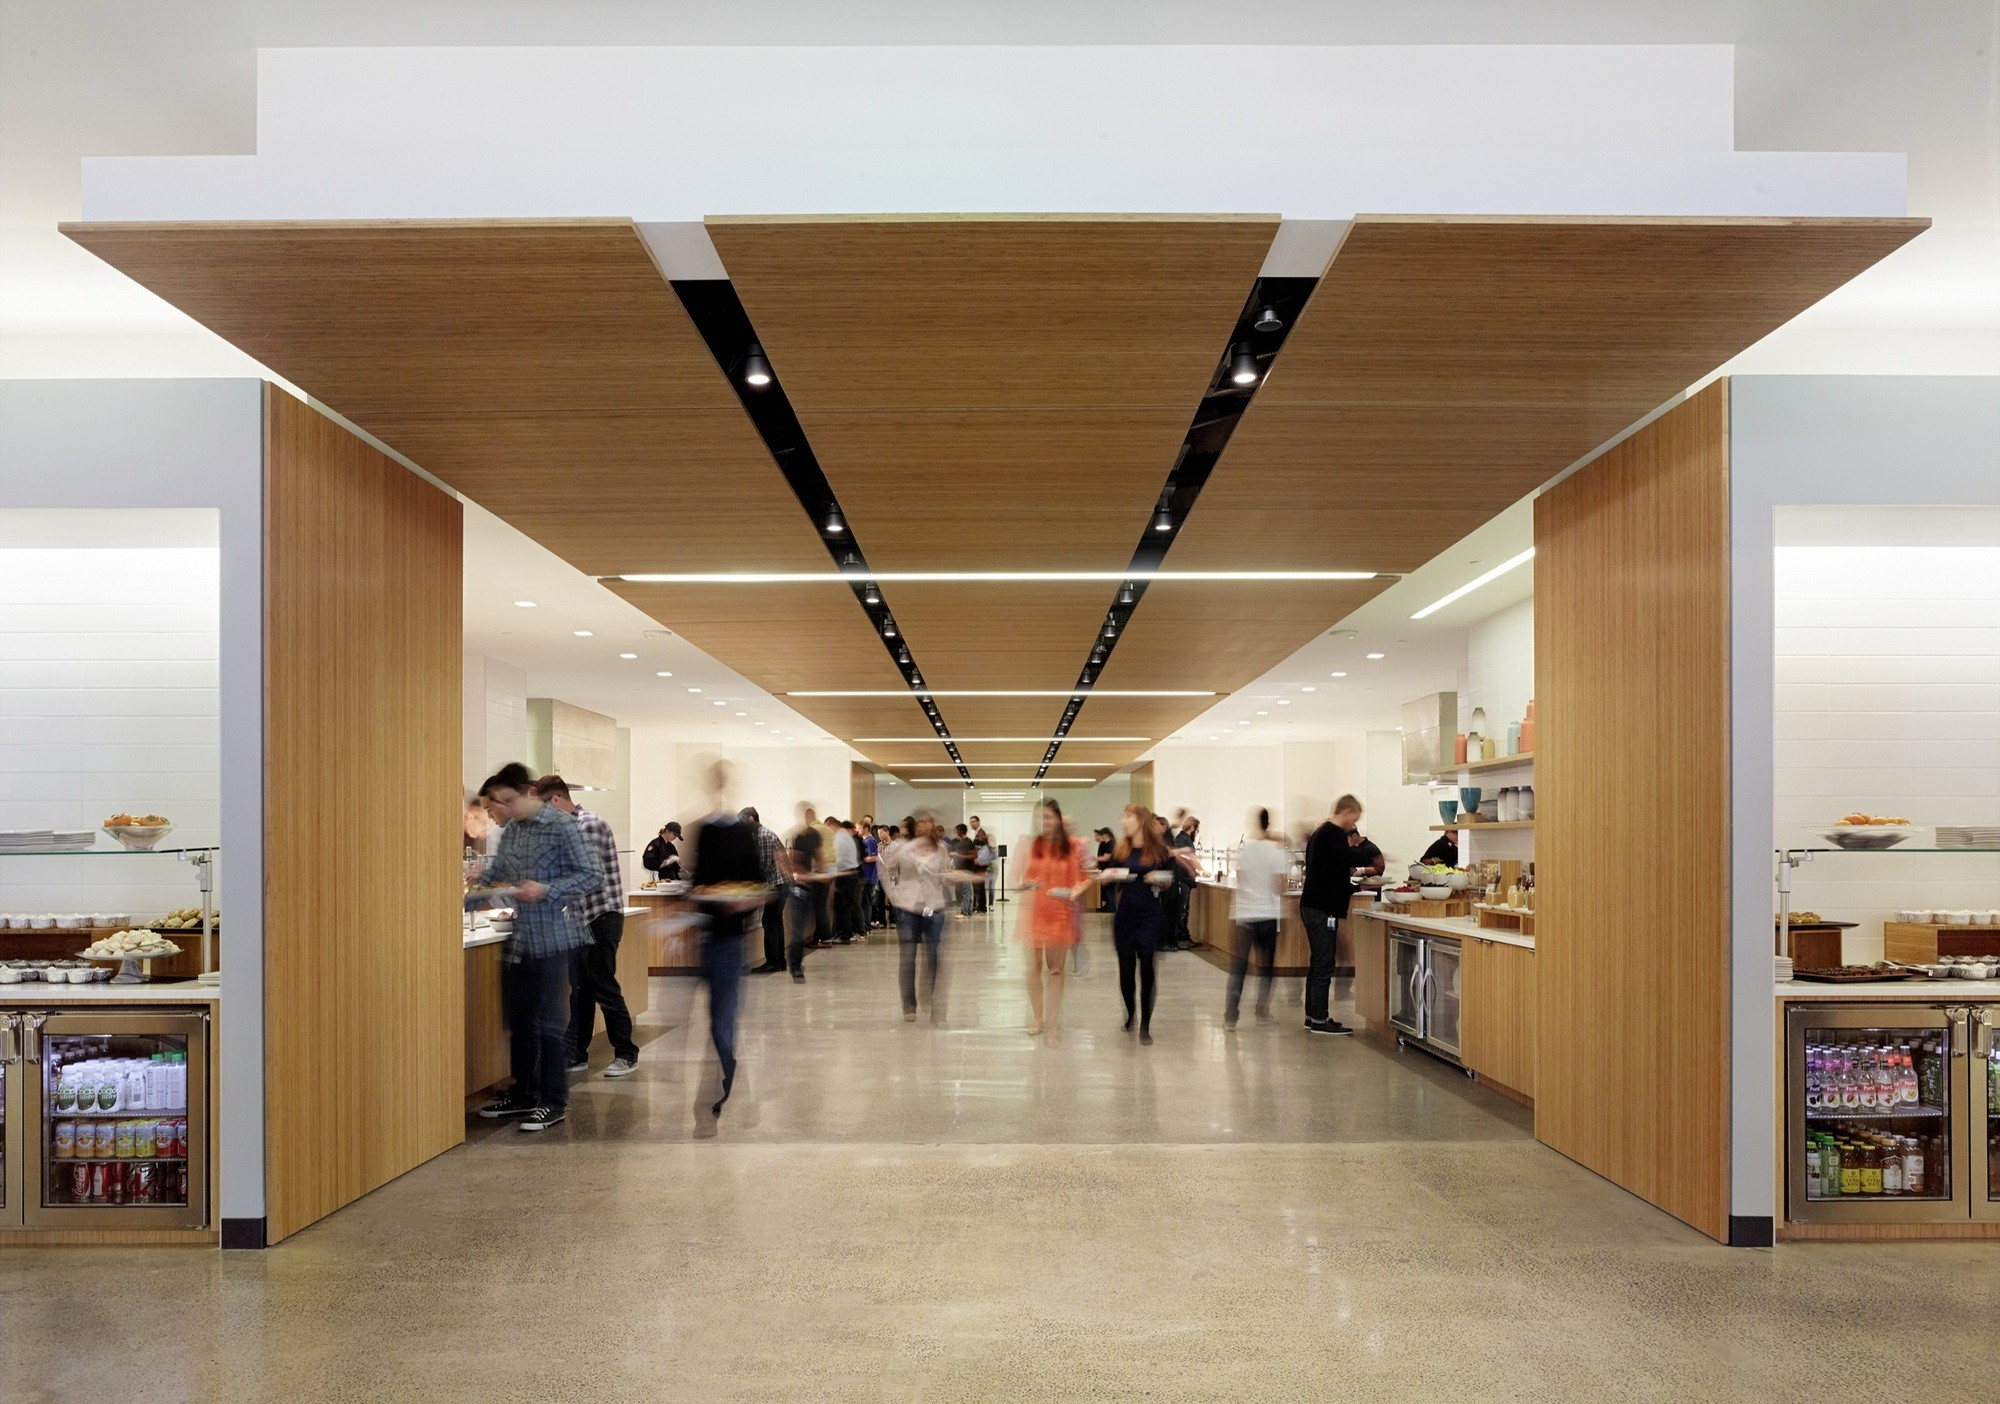 When one size does not fit all: rethinking the open office archdaily